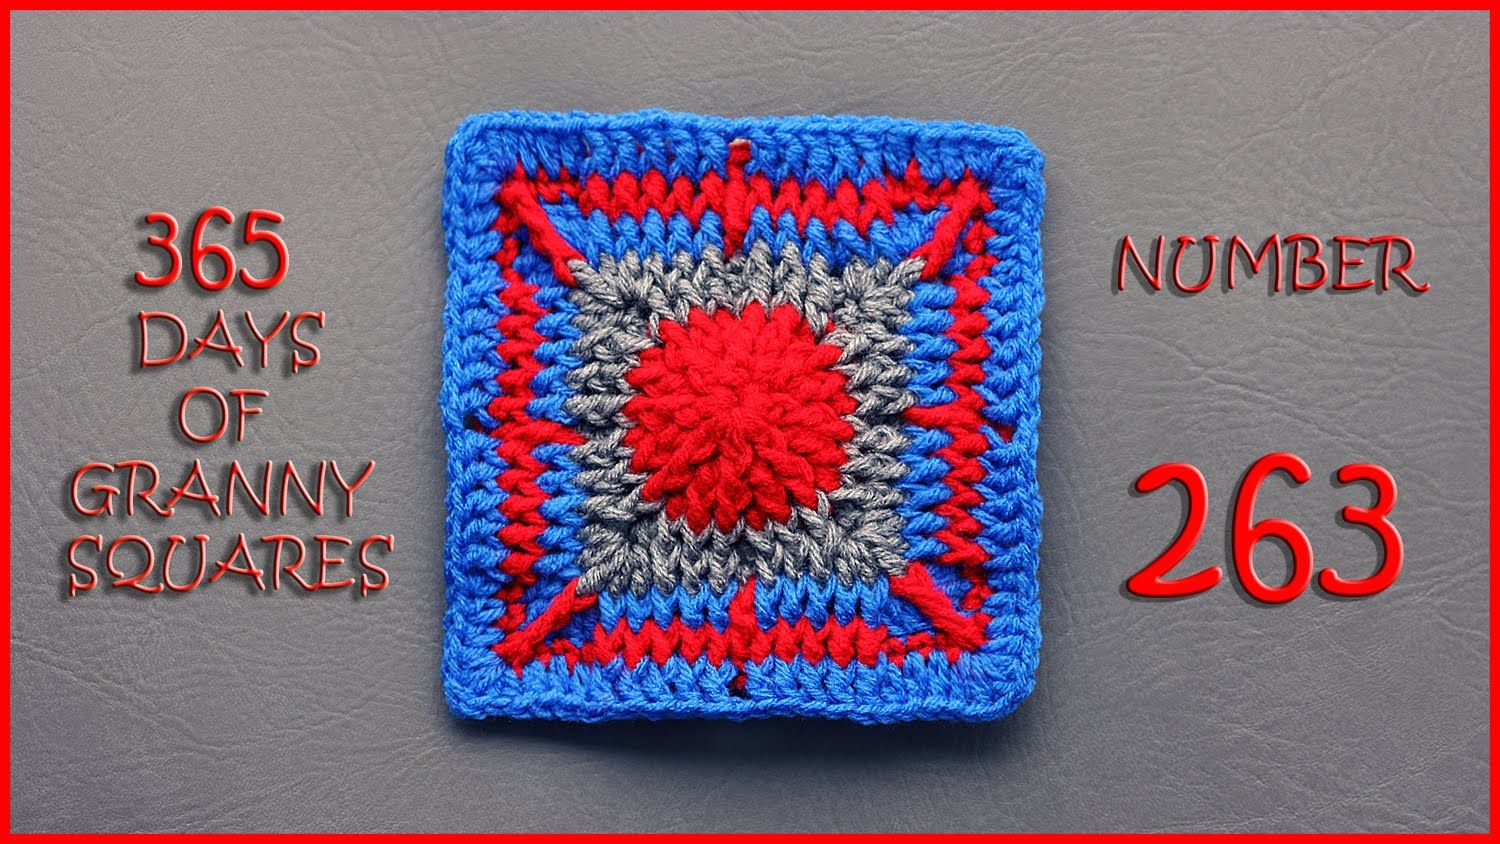 365 Days of Granny Squares Number 263